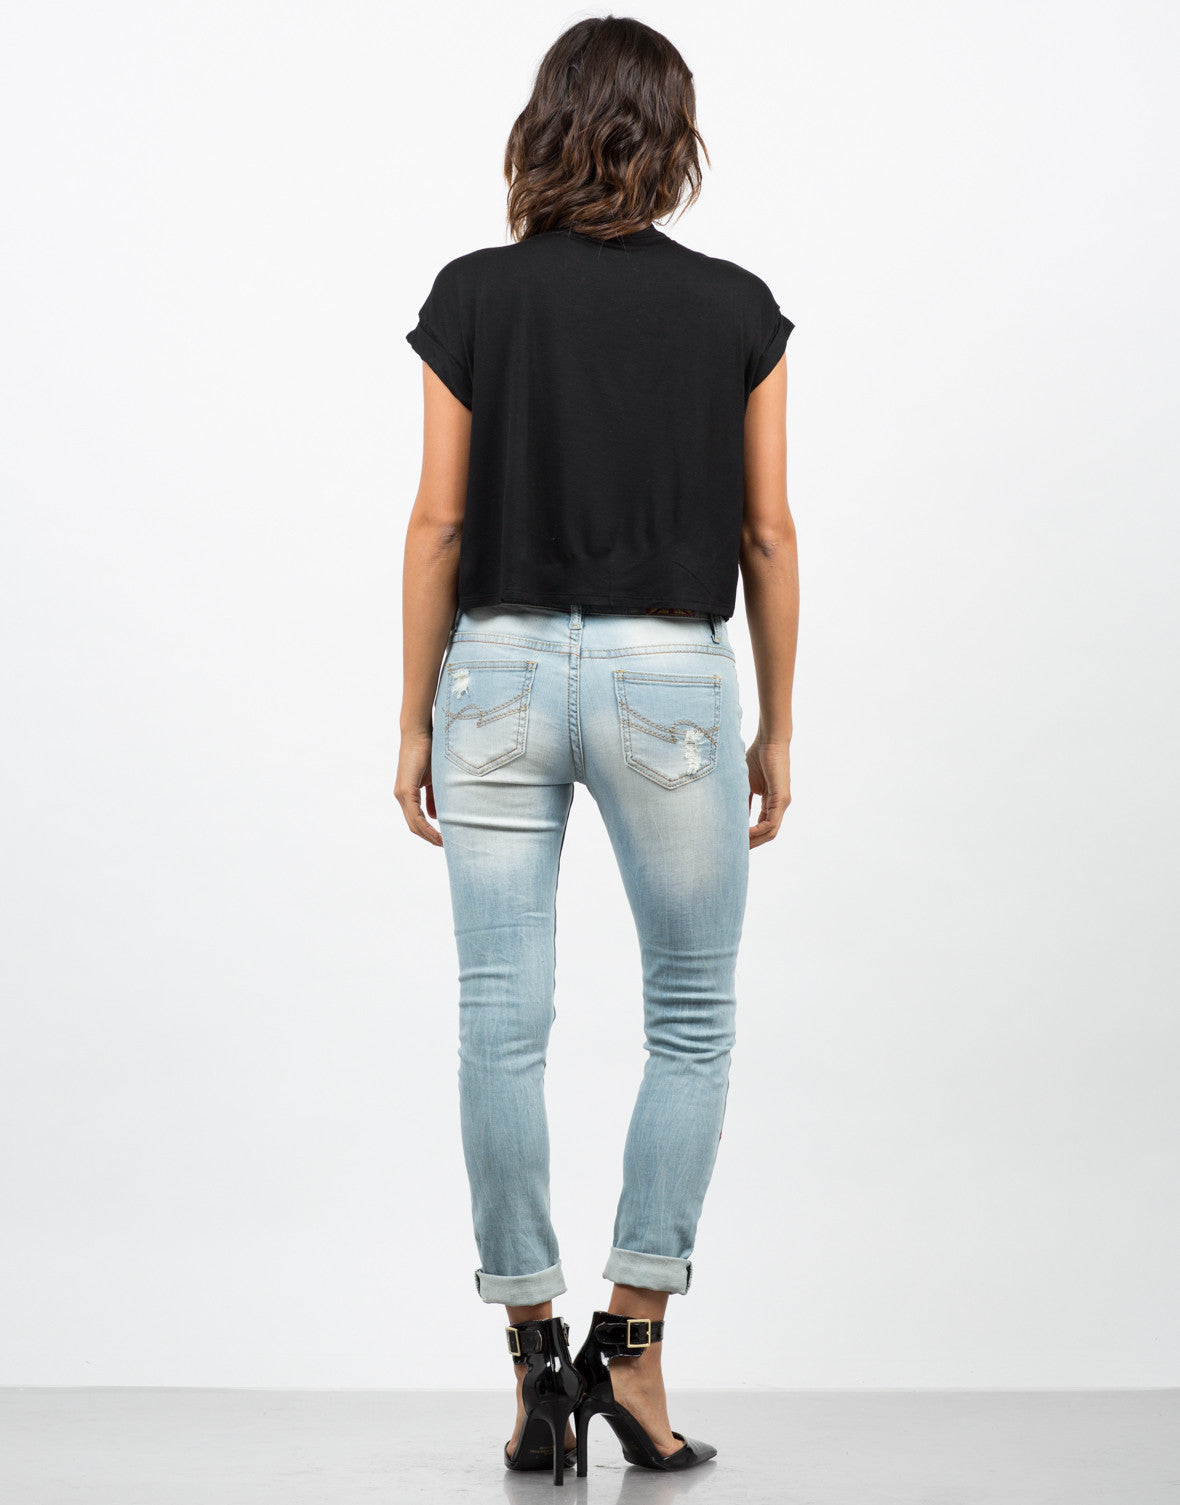 Back View of Light Wash Distressed Jeans